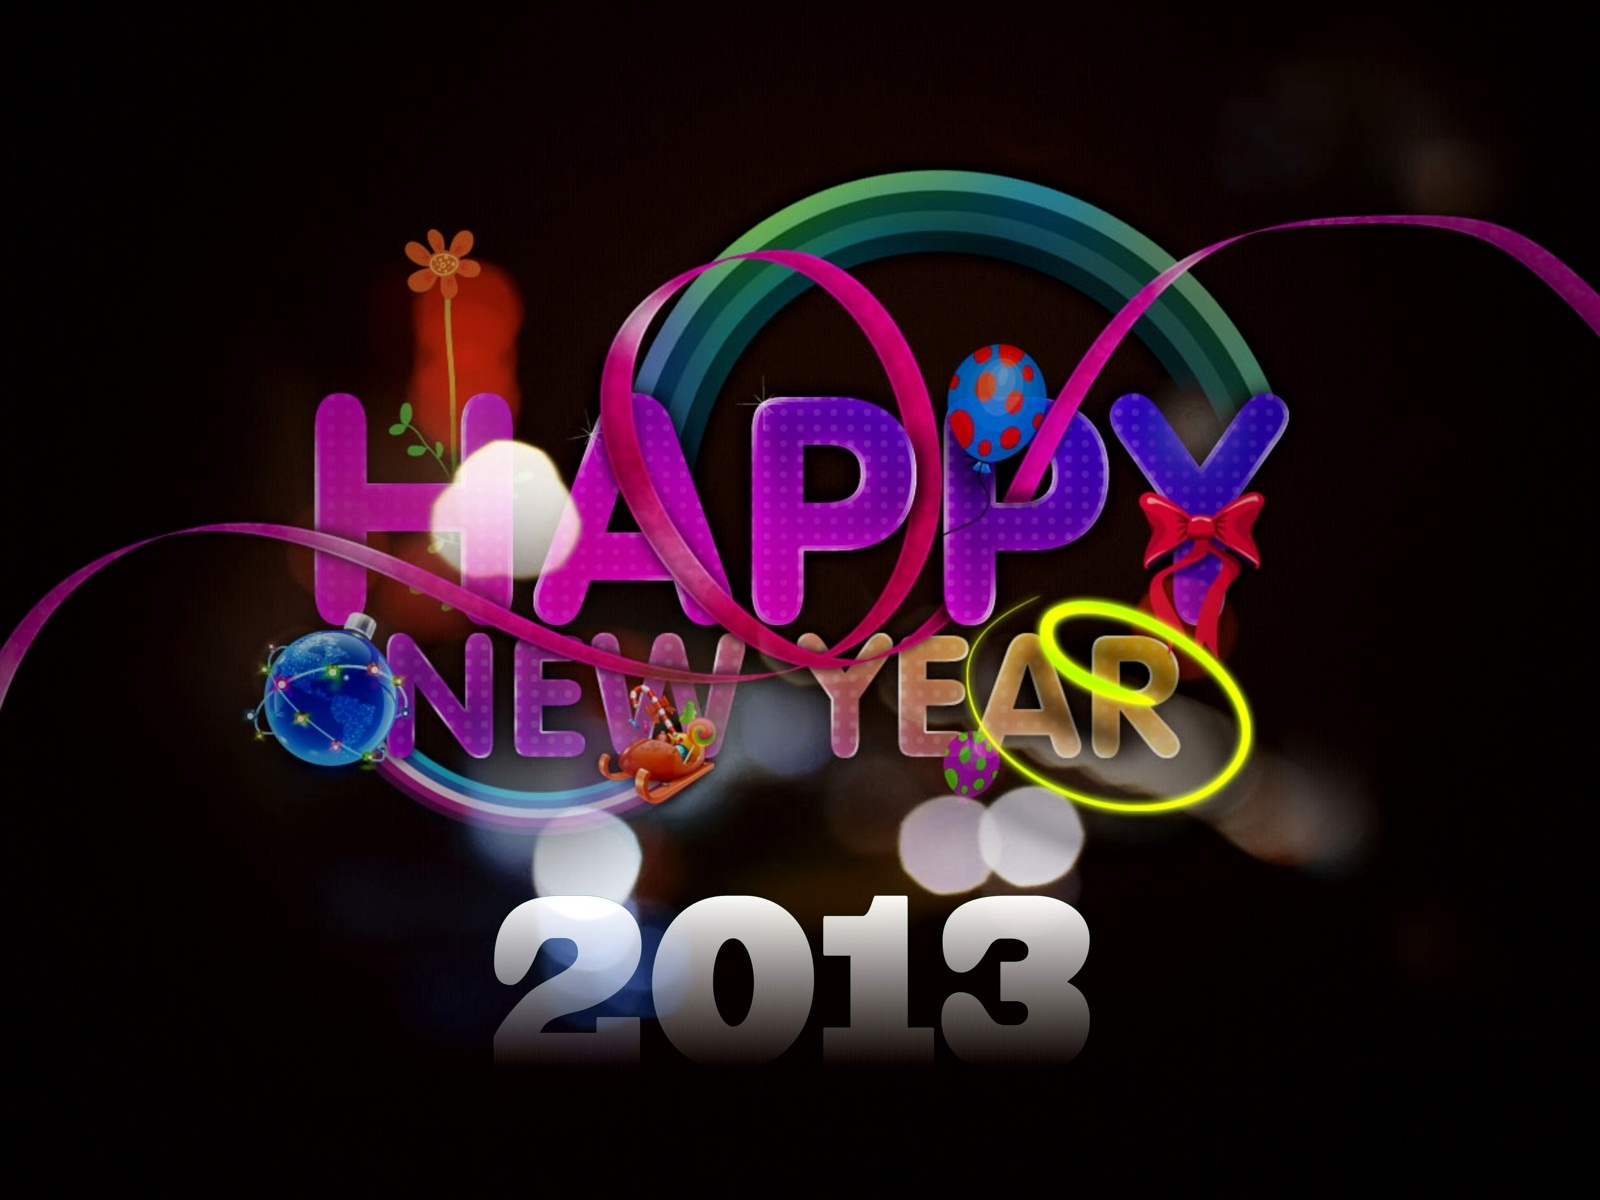 internet advertising New Year 2013 is coming and every one is ready to ...